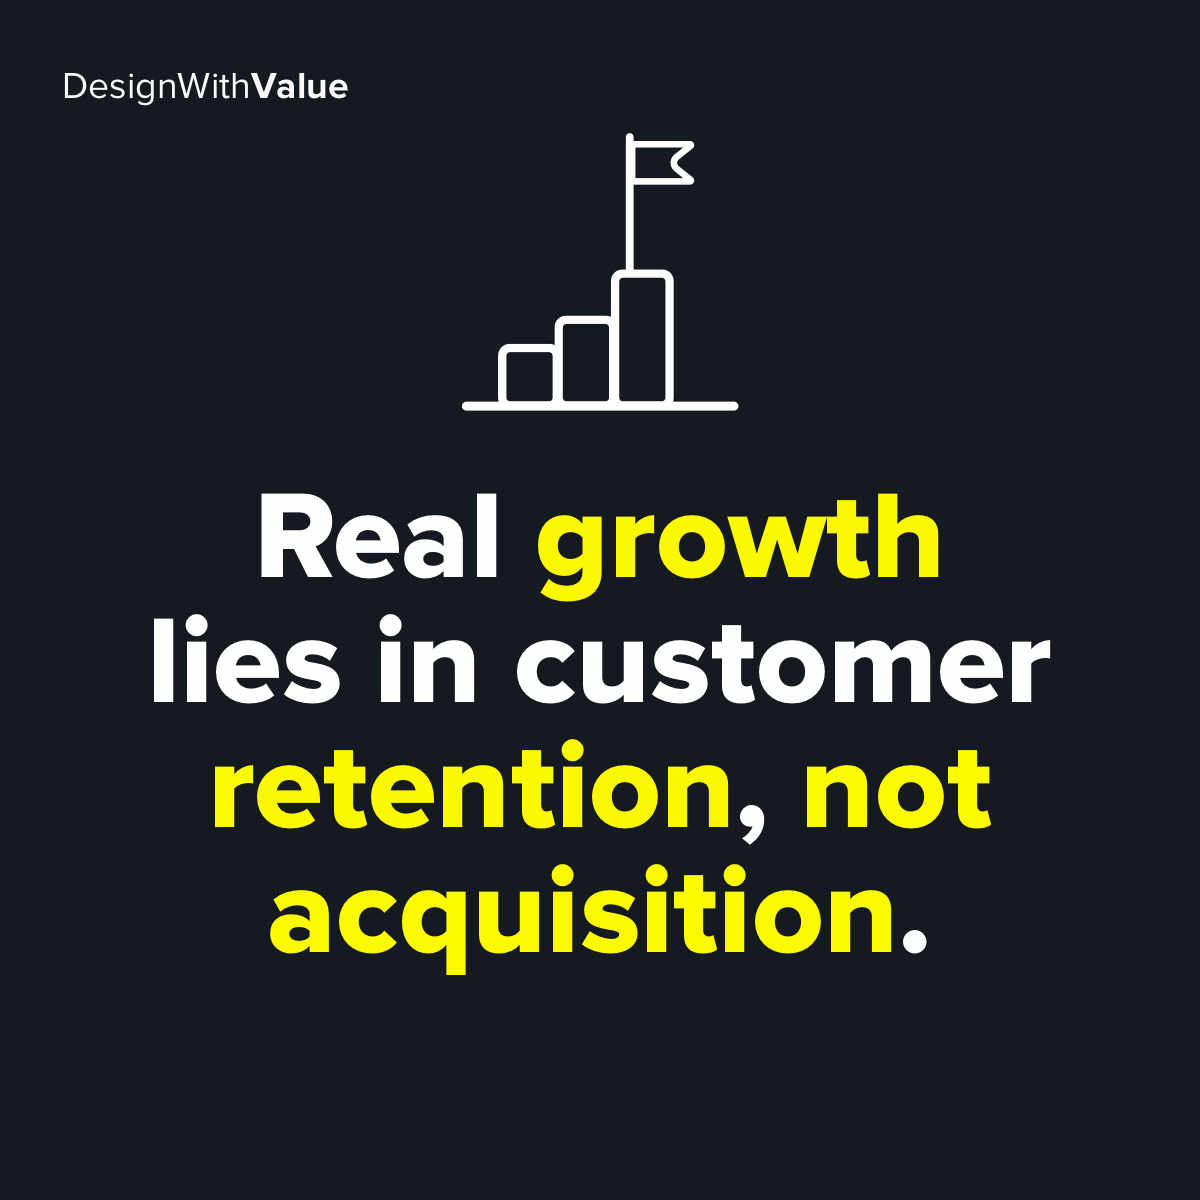 Real growth lies in customer retention not acquisition.